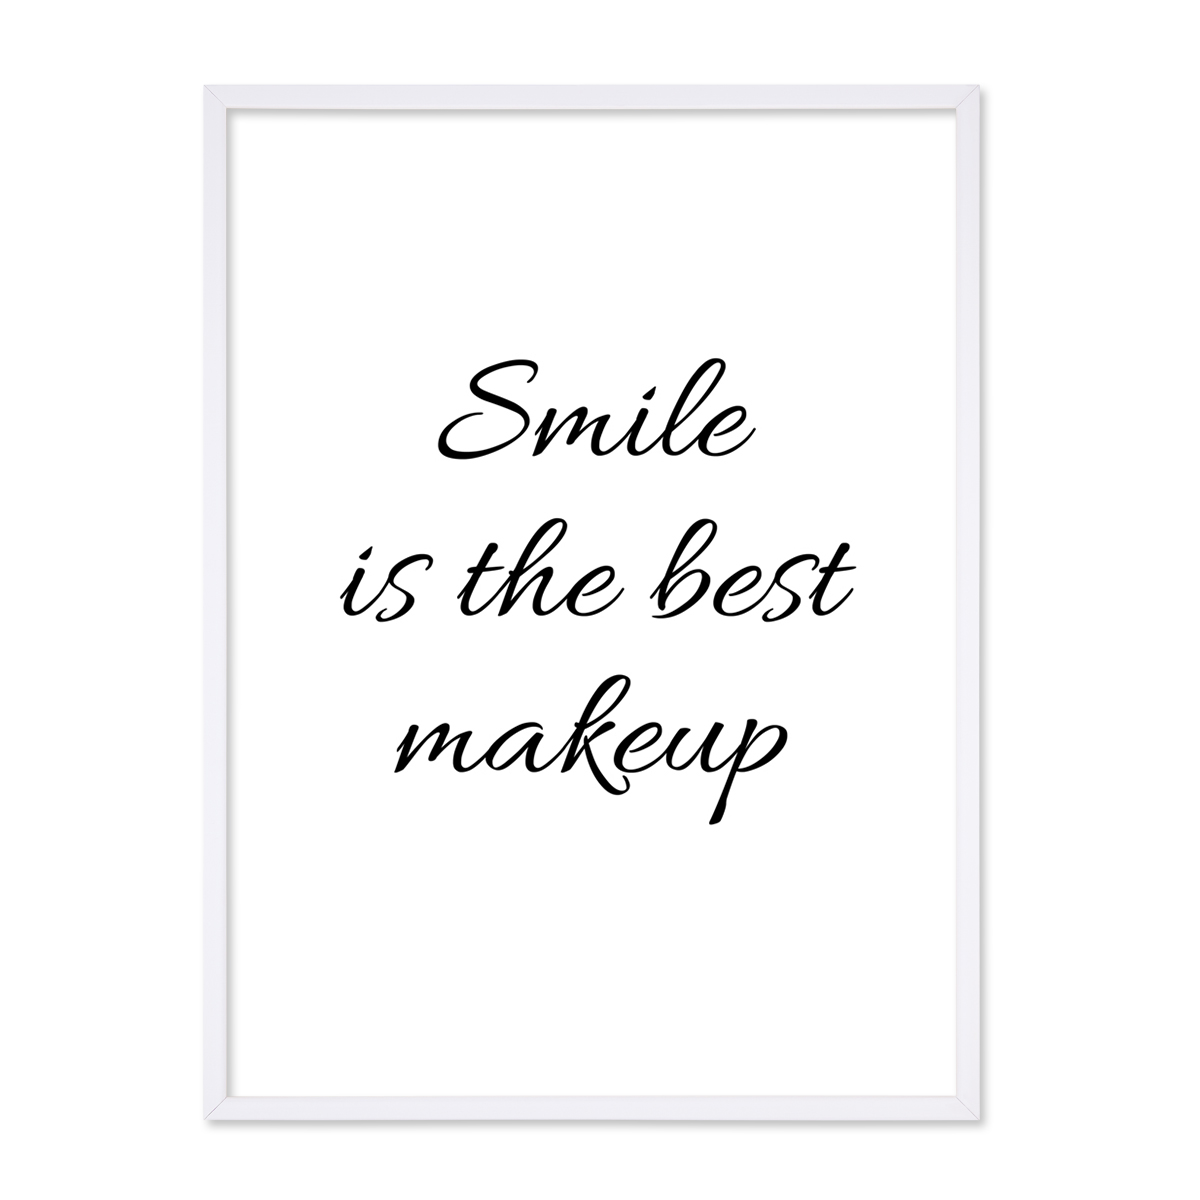 poster mit bilderrahmen weiss 39 smile 39 30x40 cm schwarz weiss motiv spruch typopgraphie poster. Black Bedroom Furniture Sets. Home Design Ideas